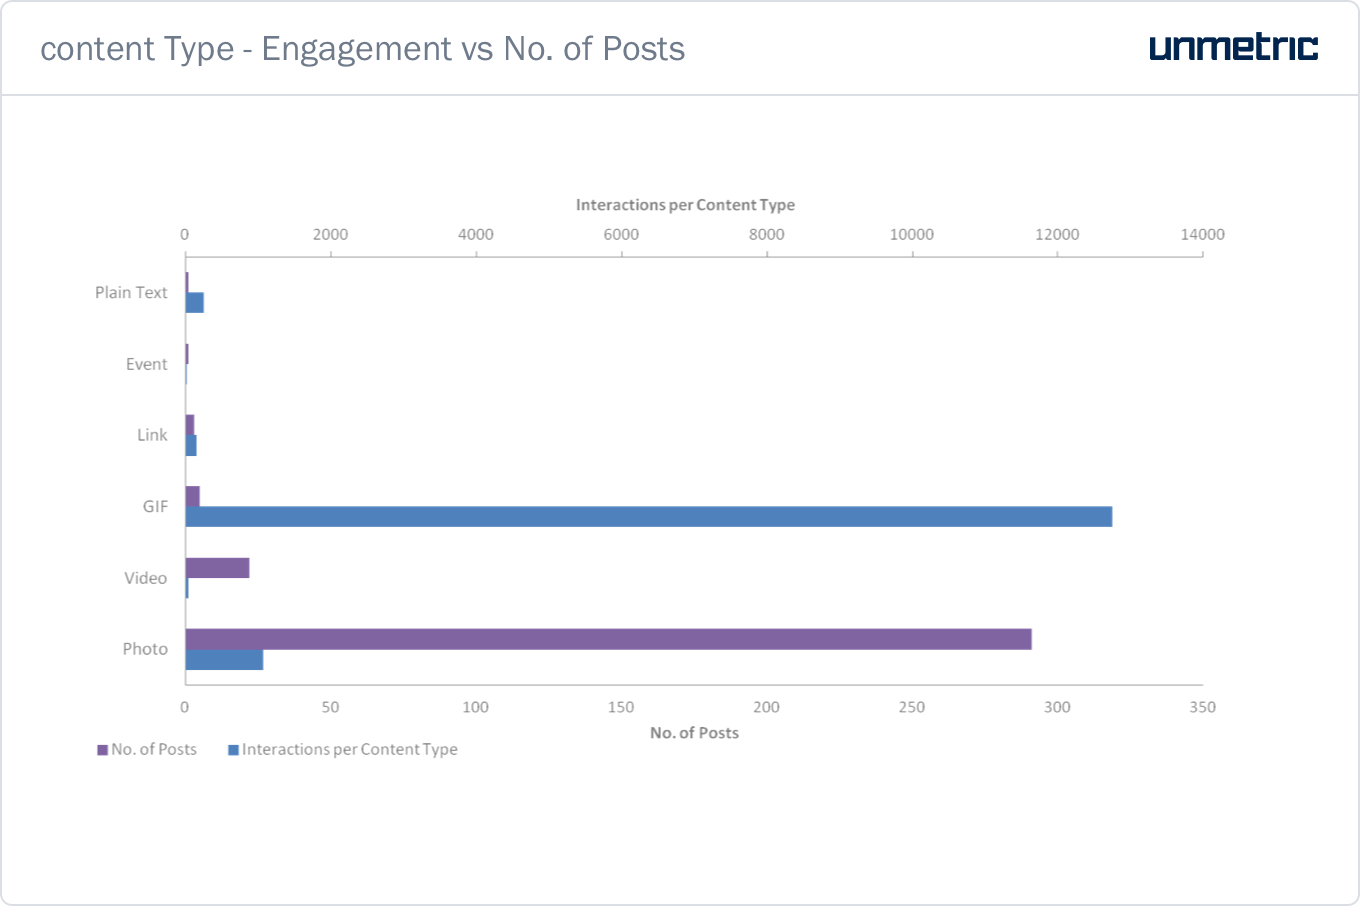 content-Type-Engagement-vs-No. of-Posts.png